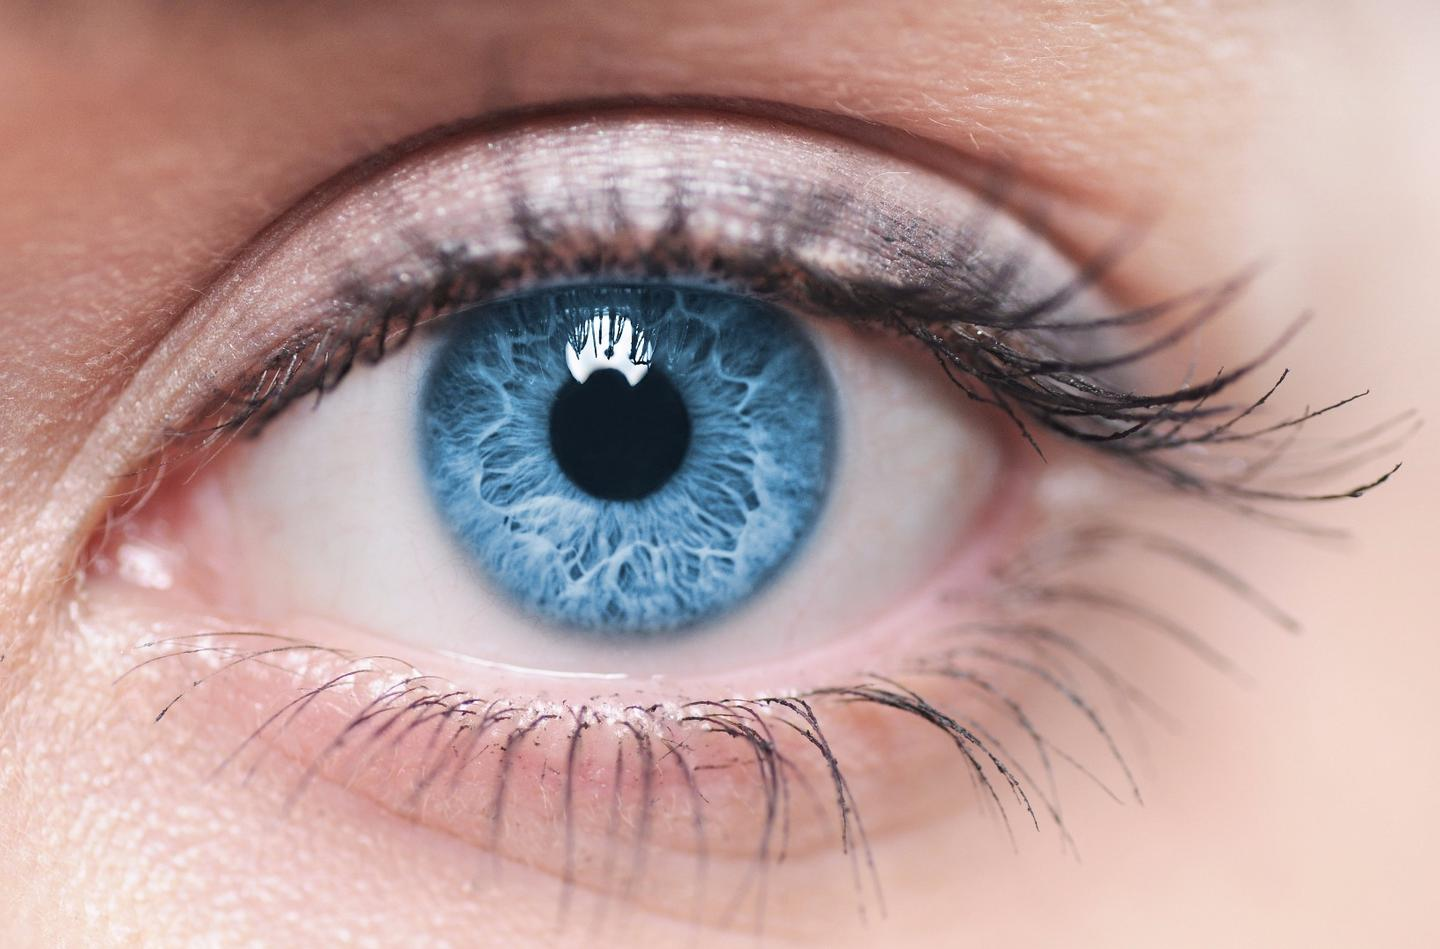 Scientists have proved that the gene editing tool CRISPR is effective at combating retinitis pigmentosa in patient-derived stem cells